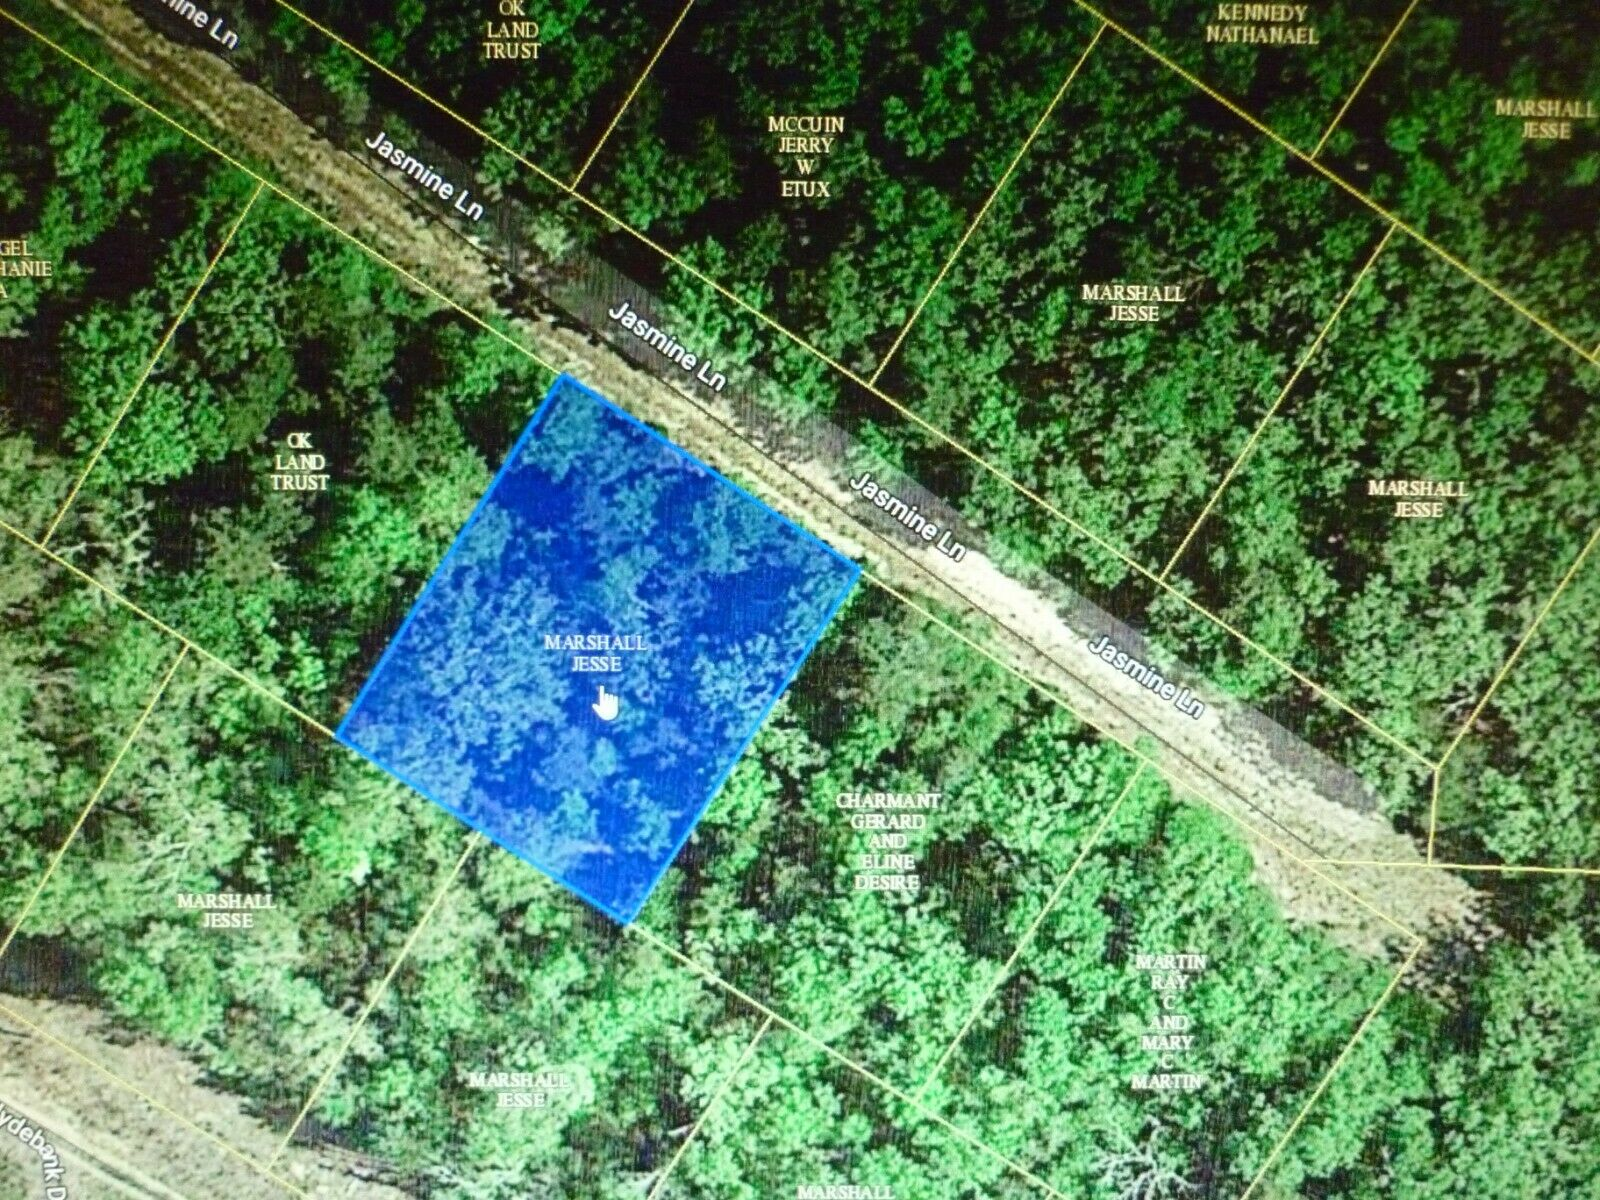 9919 Sq Feet .2277 Acre Briarcliff, AR- HALF Mile To Norfork Lake POWER CLOSE - $20.50